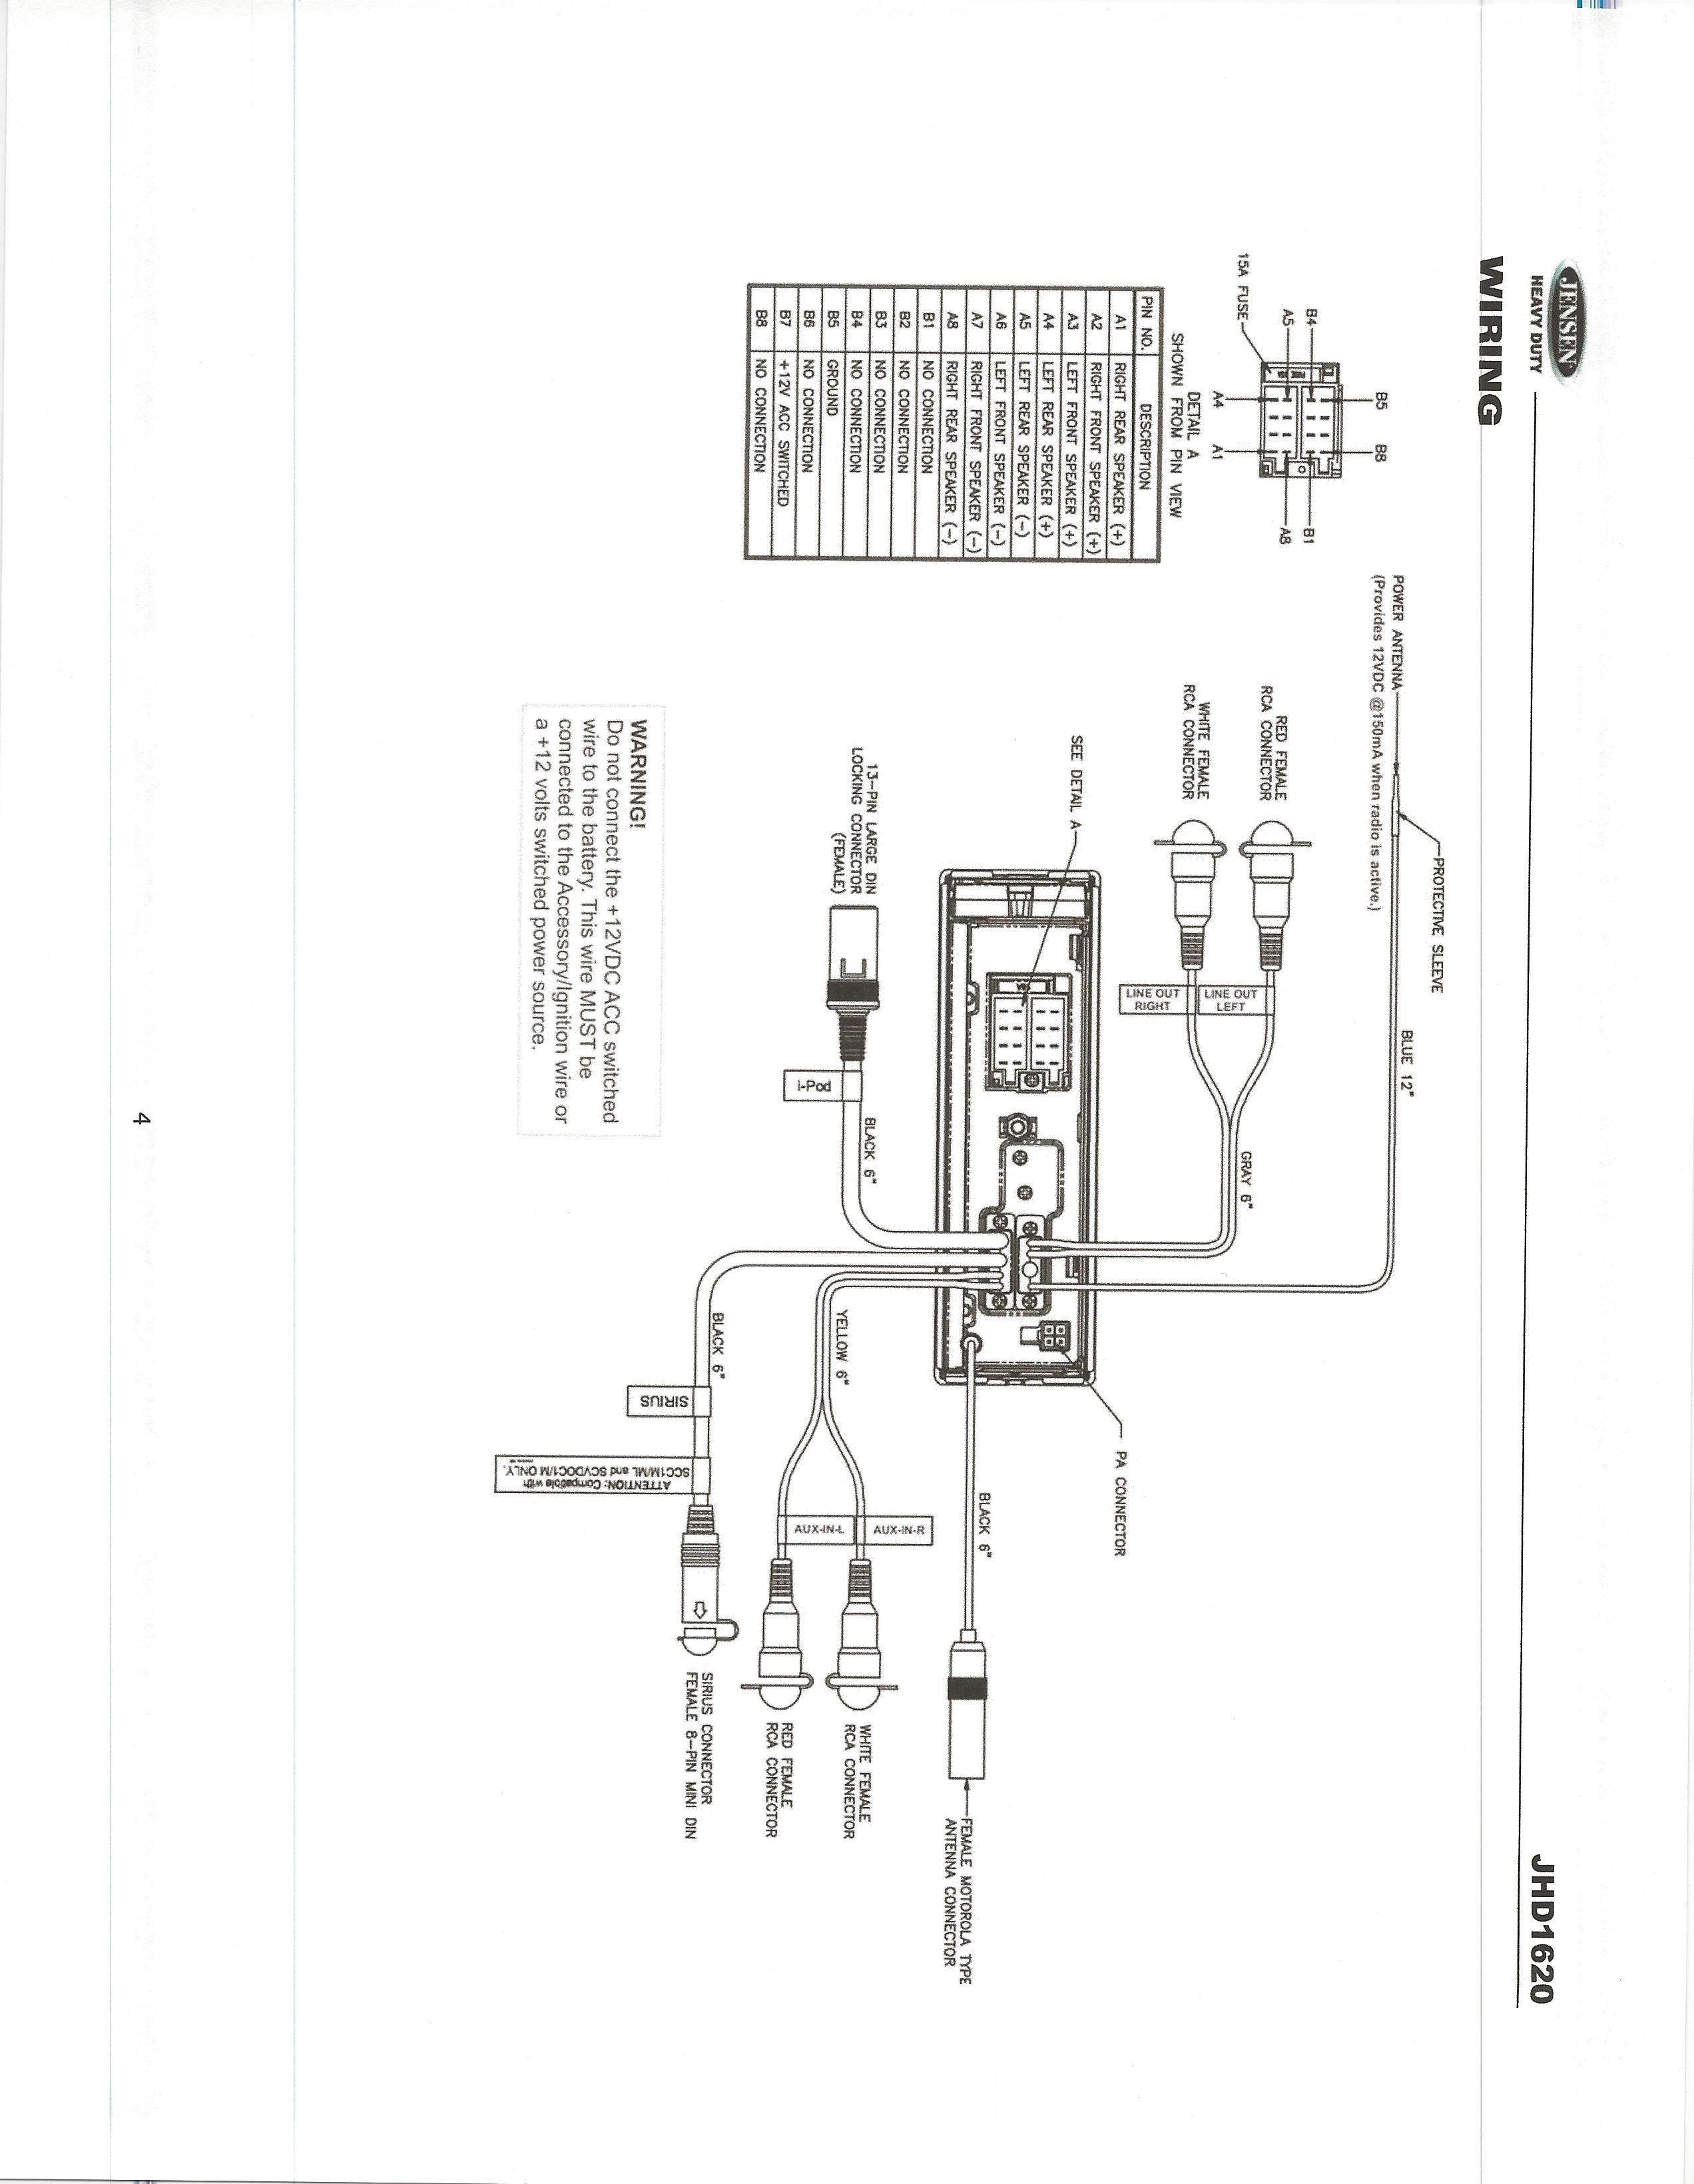 Zc Tractor Radio Wiring Harness Wiring Diagram